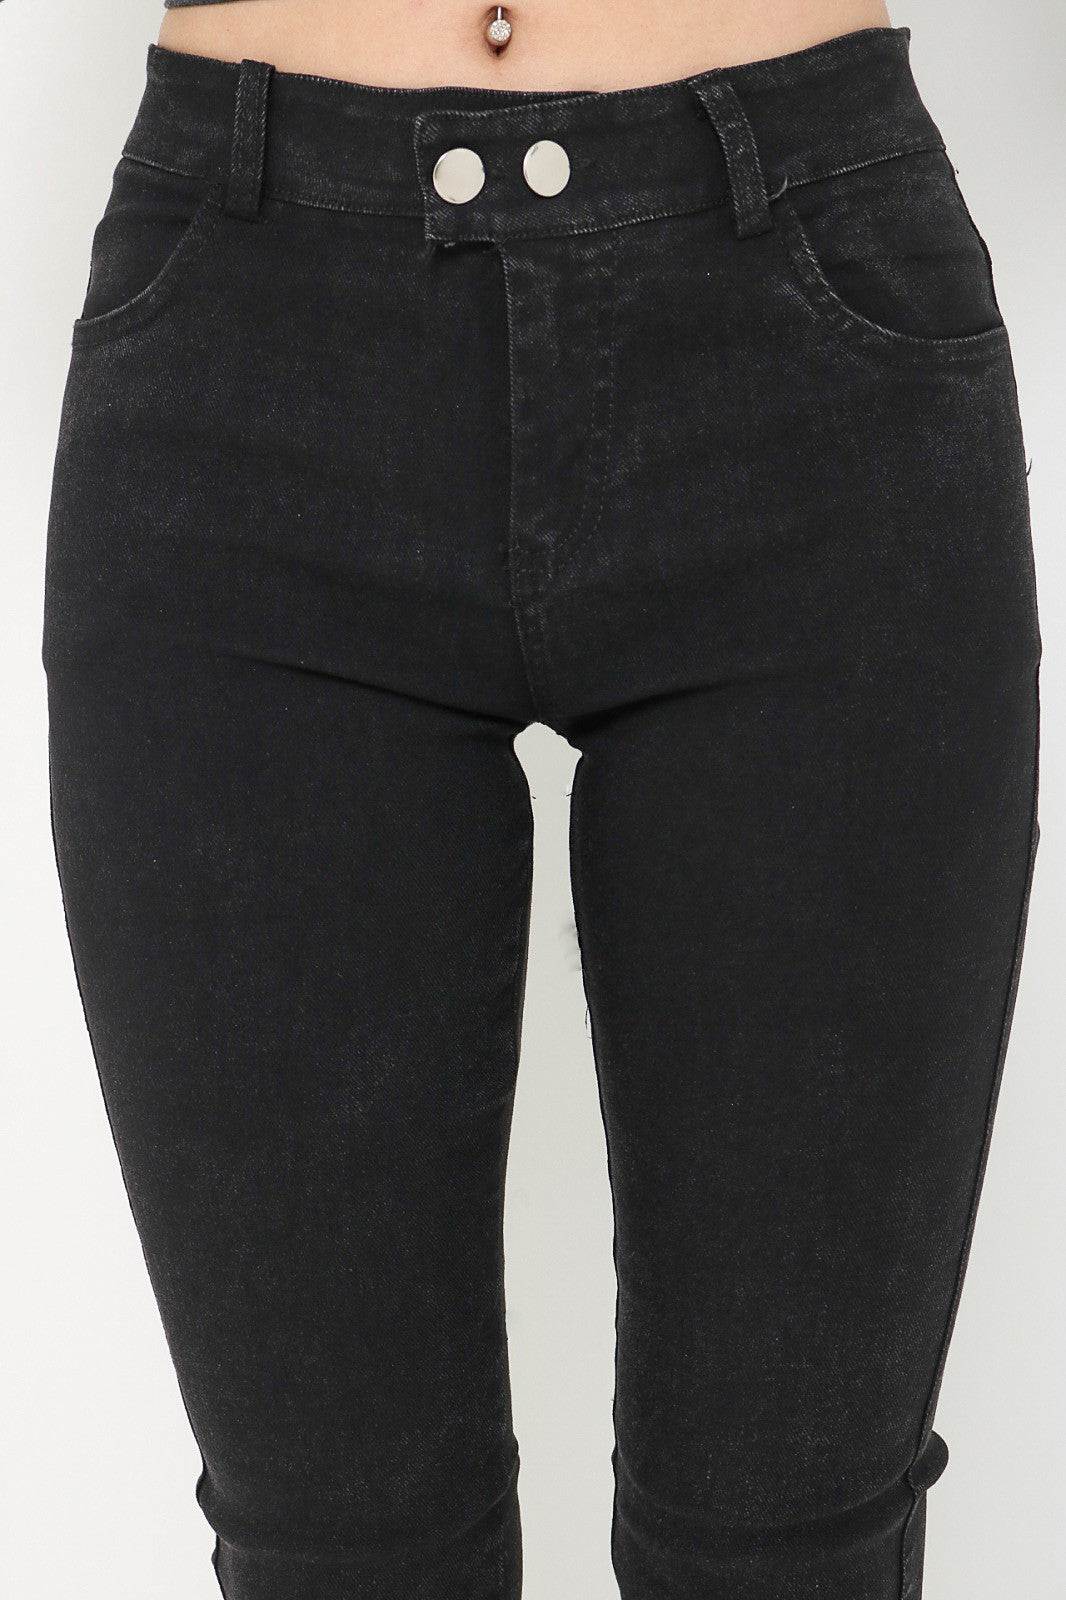 (RESTOCKED 6) PERFECTLY YOURS DENIM JEGGINGS IN BLACK - TOPAZETTE